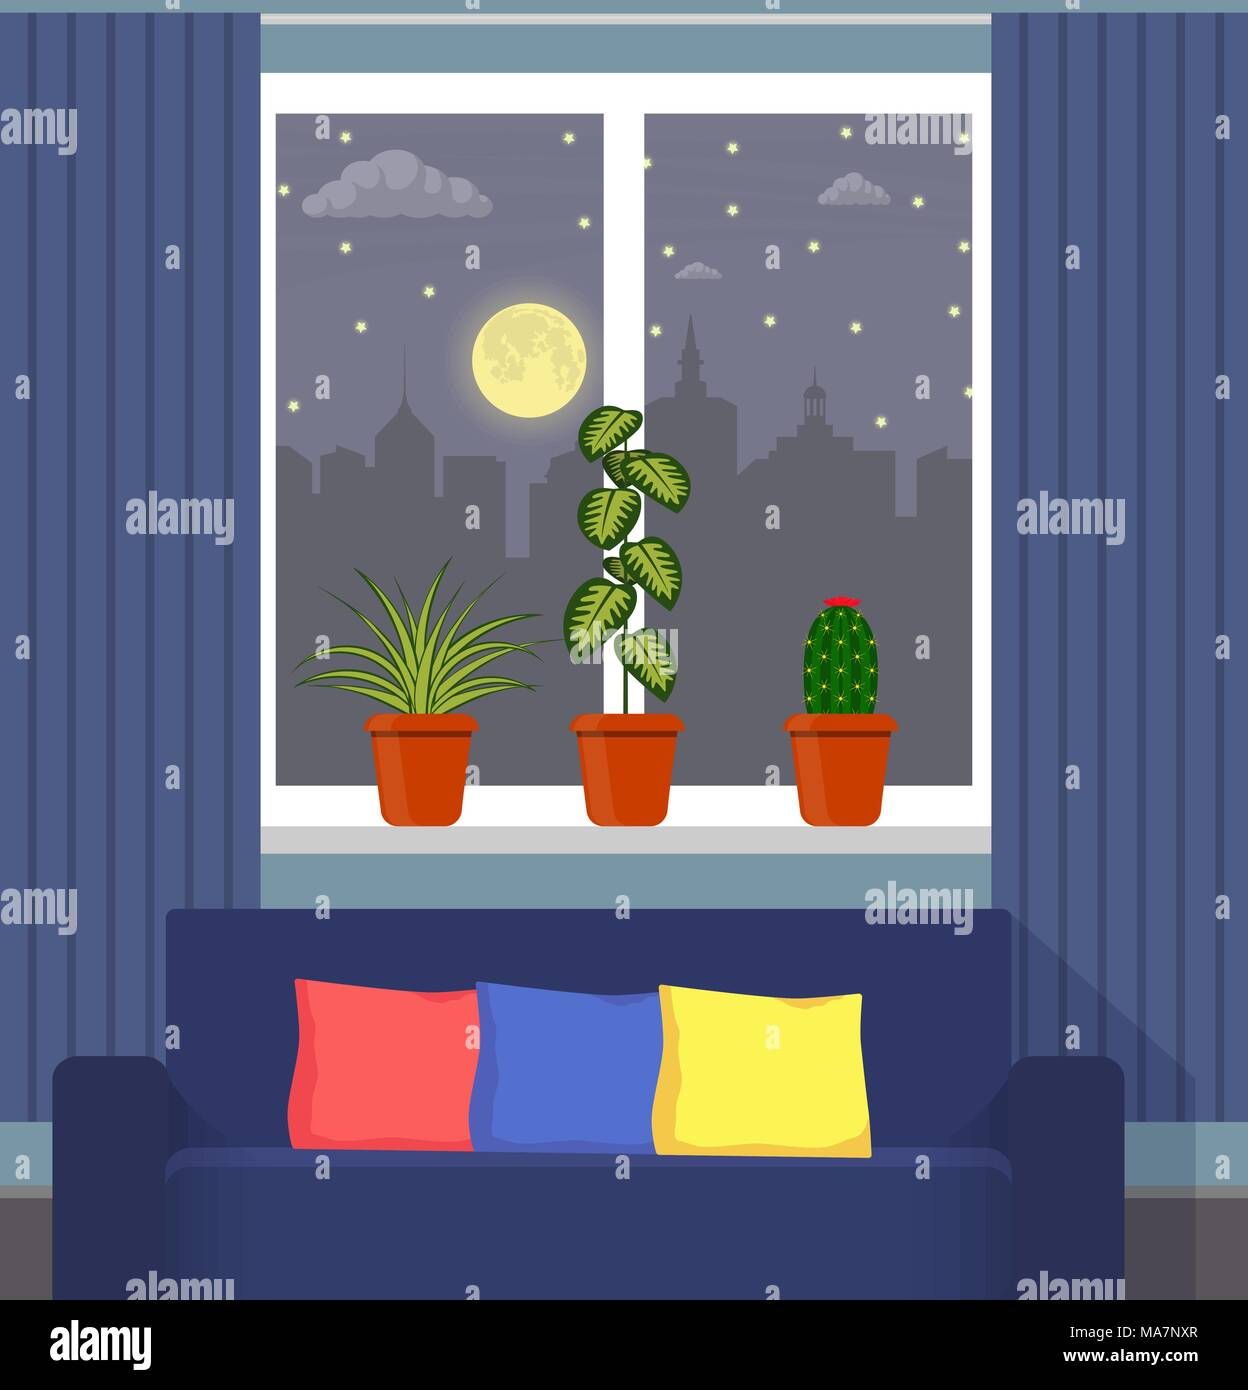 Perfect Big Window With Curtain And Plants In Pots On The Windowsill. Night City,  Moon, Clouds And Stars Outside The Window. The Couch In The Foreground. Vect